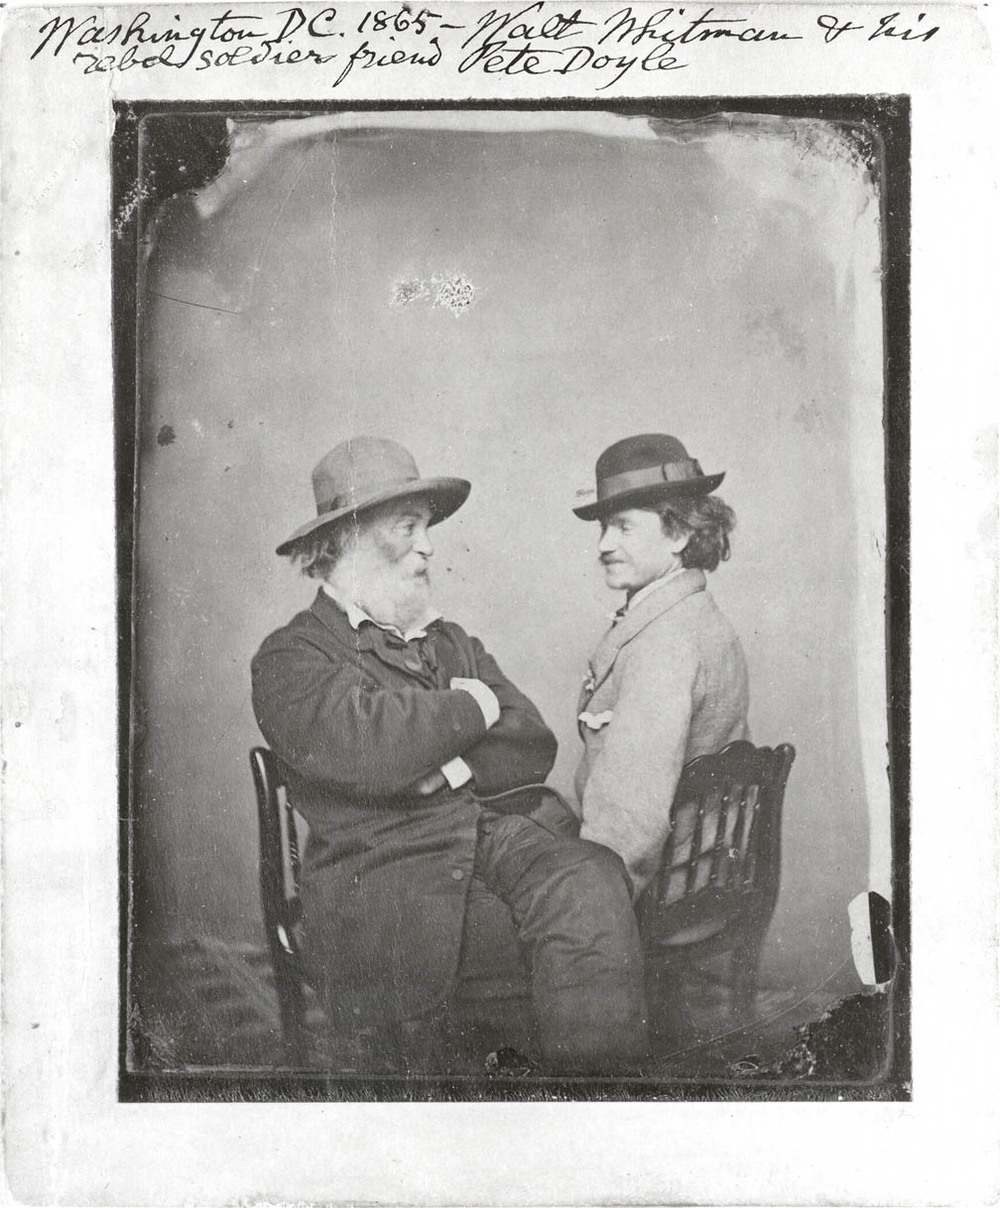 "This is the first extant photo (c. 1869) of Whitman with anyone else, here Peter Doyle, Whitman's close friend and companion in Washington. David Dietcher, guest curator of ""Dear Friends: American Photographs of Men Together, 1840-1918"" at the International Center of Photography, notes: ""The introduction of photography to the United States in 1840 coincided with a surprisingly broad-minded attitude toward same-sex intimacy. Thanks initially to the pioneering efforts of feminist historians, we now know that nineteenth-century American men and women were in many ways encouraged to establish intense, even passionate, bonds with members of their own sex... Male friendship in a variety of social guises was always encouraged in American culture, especially as masculinity was distinguished from the separate sphere of conventionally feminine roles and pursuits.""  Image source:  http://www.whitmanarchive.org/multimedia/image033.html?sort=year&order=ascending&page=4  Quotation source:  http://museum.icp.org/museum/exhibitions/dear_friends/intro2.html"